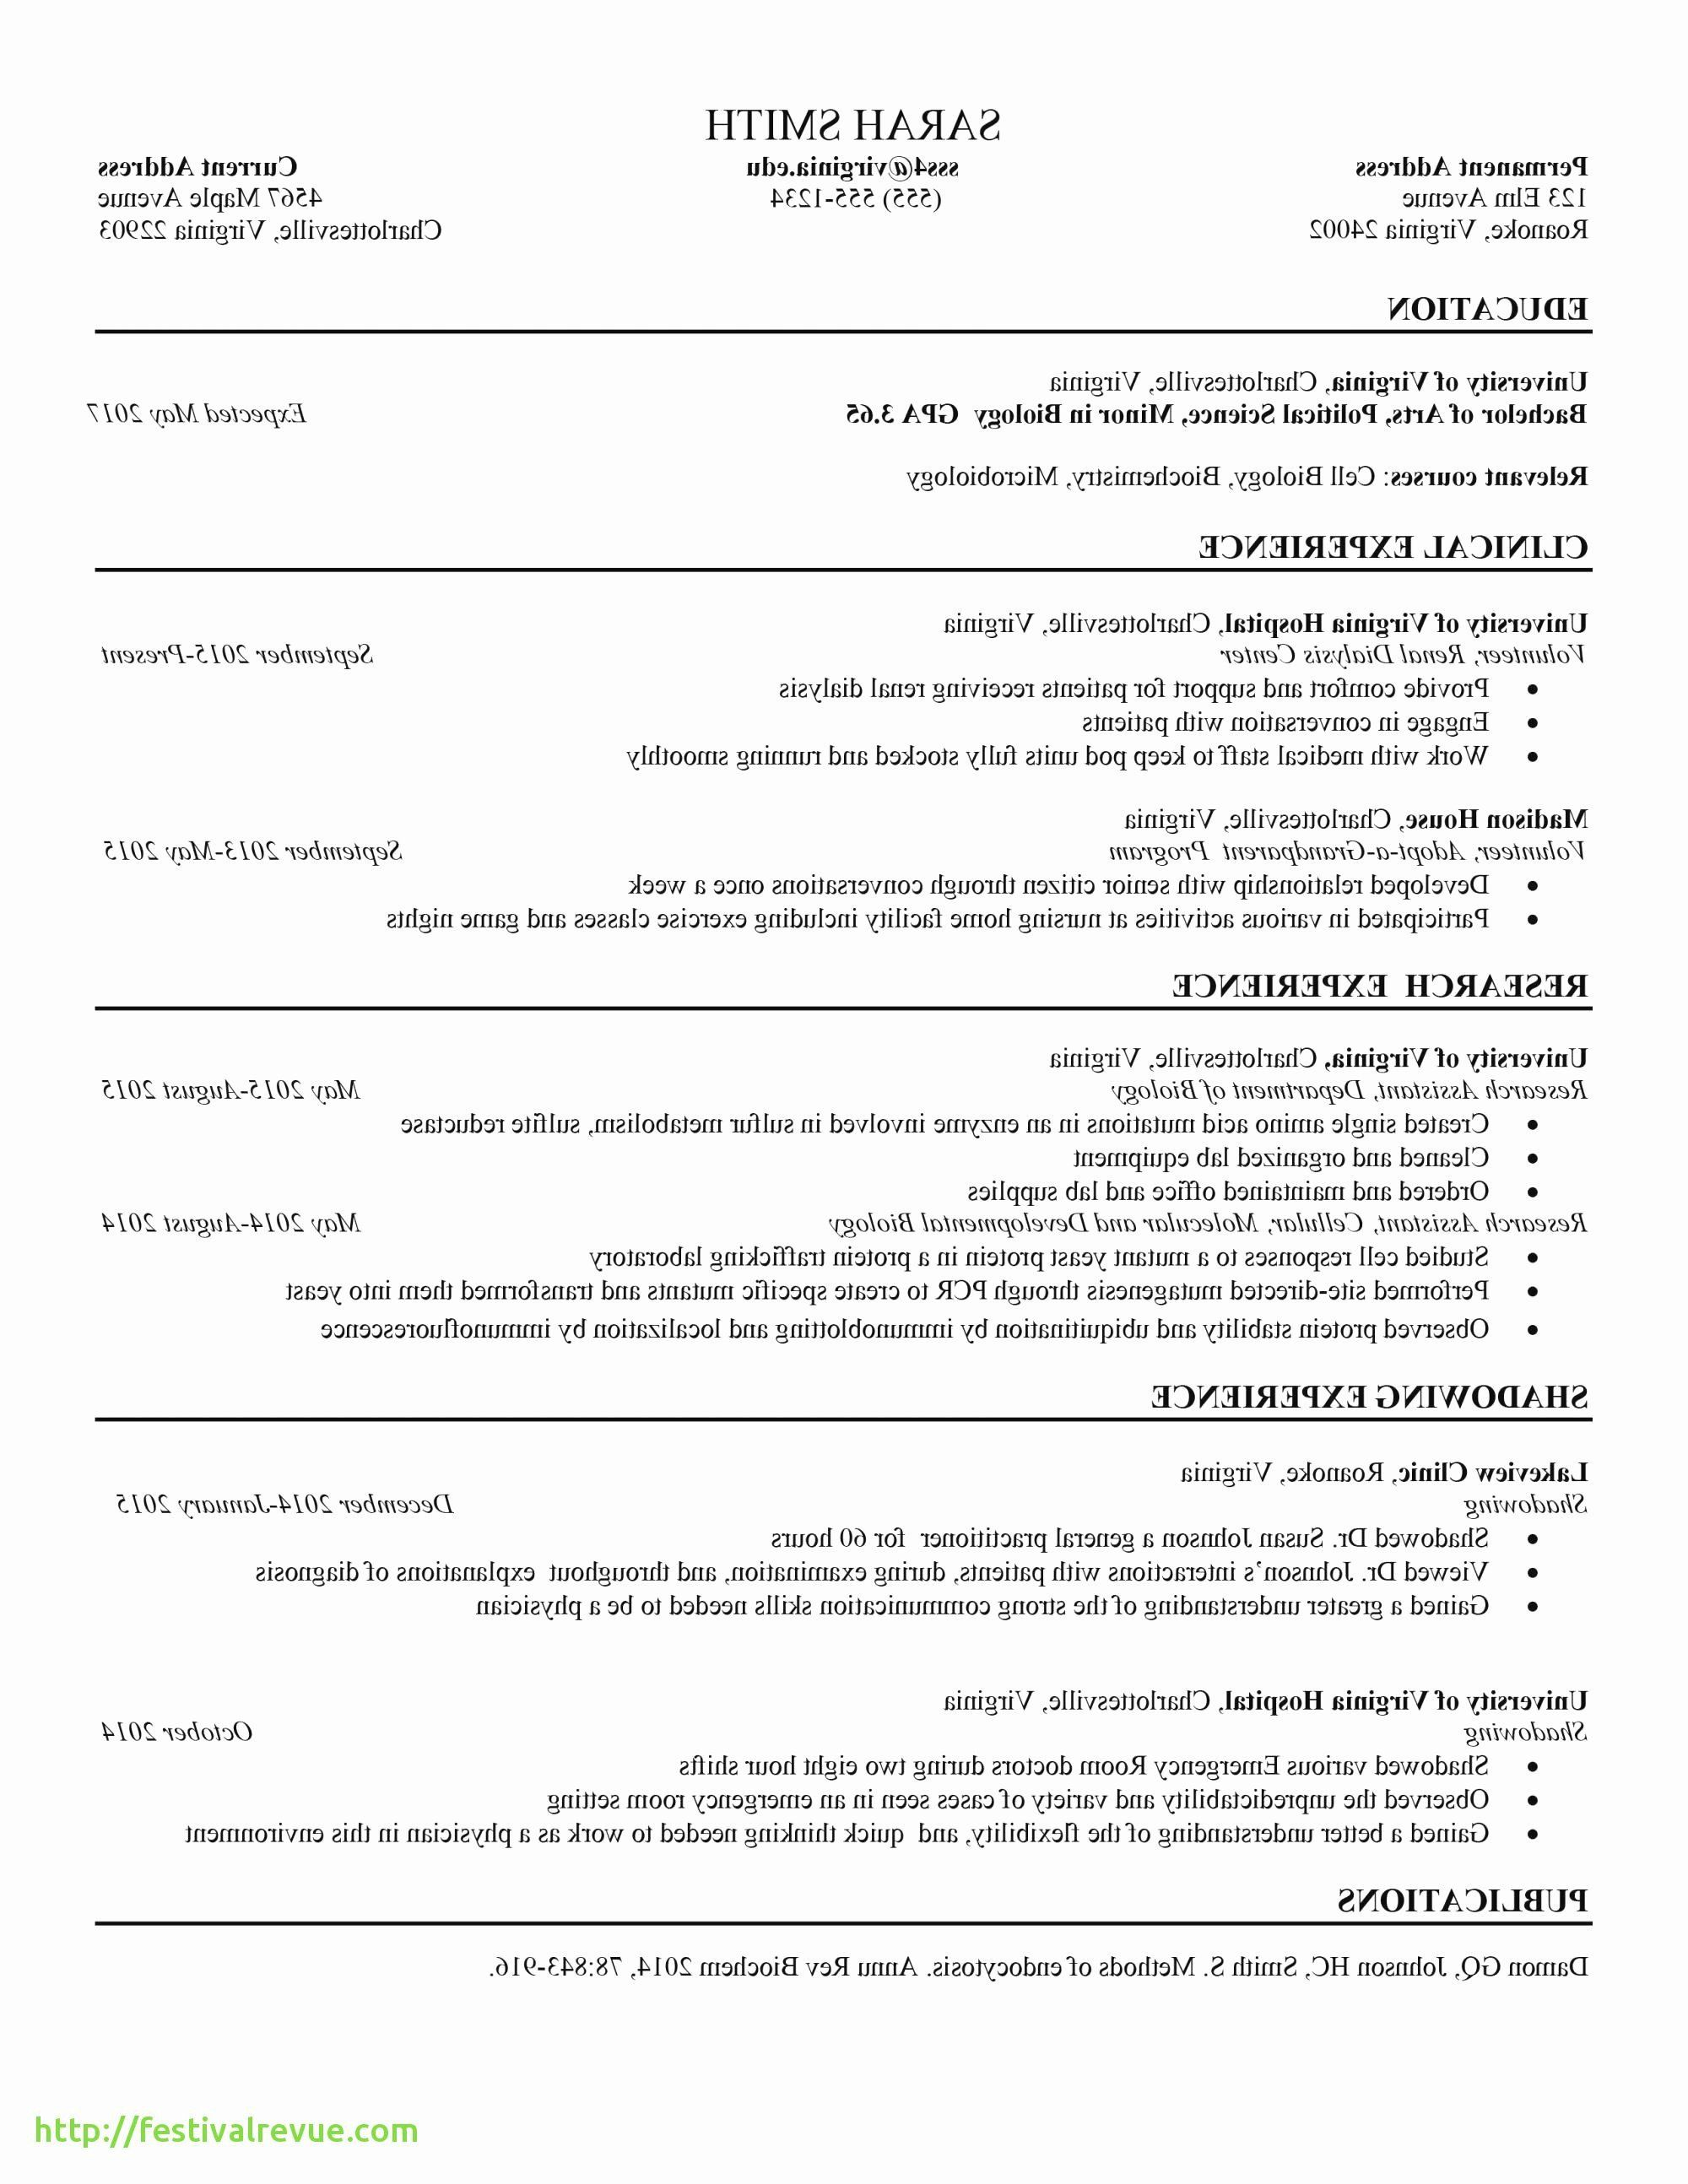 New Grad Nursing Resume Nurse Practitioner Resume New